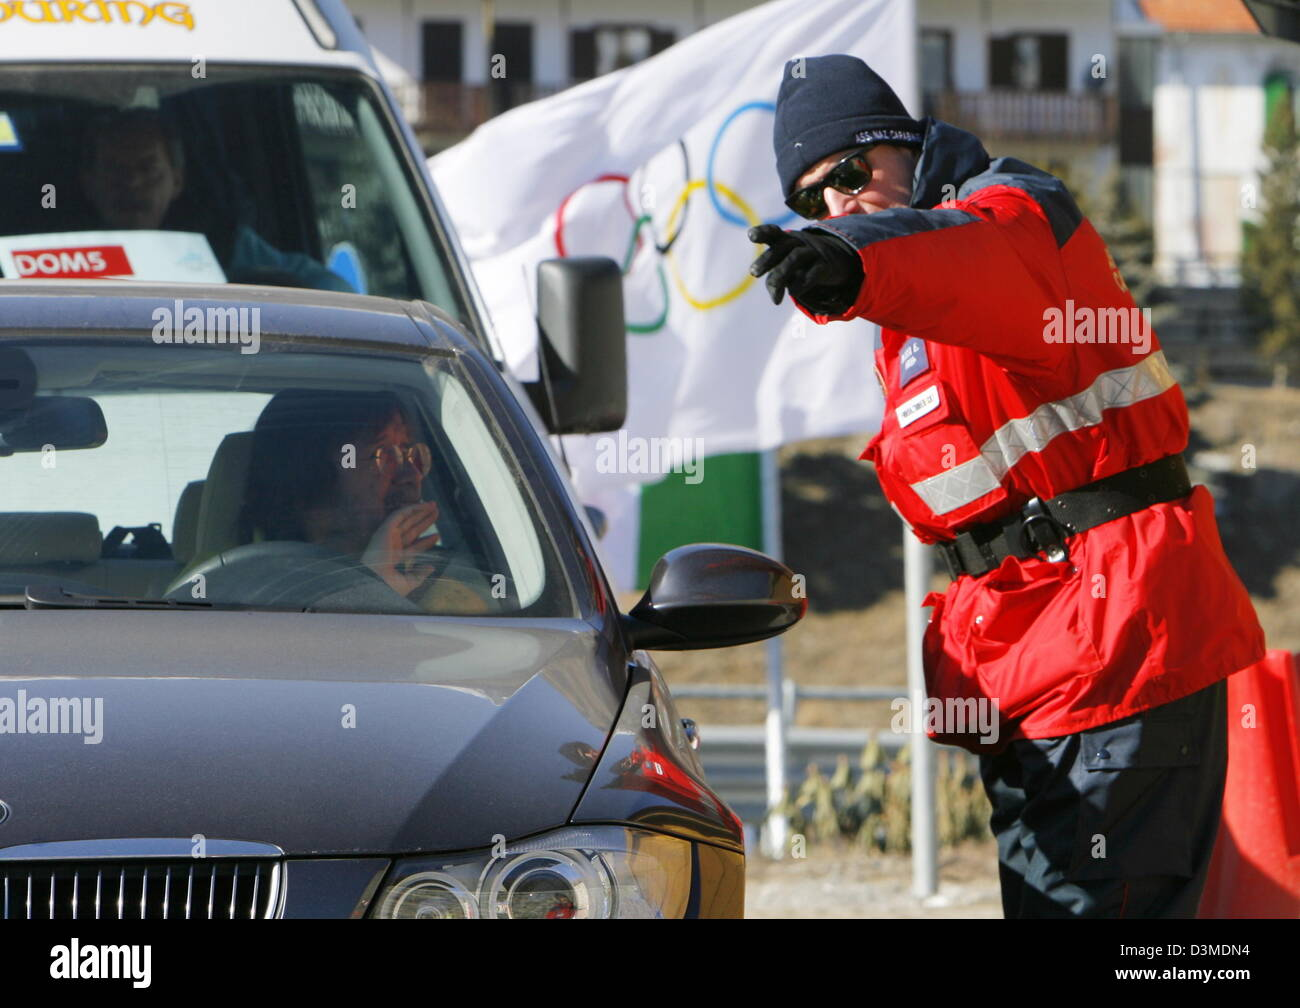 An Italian police officer stands at a traffic check point and Stock